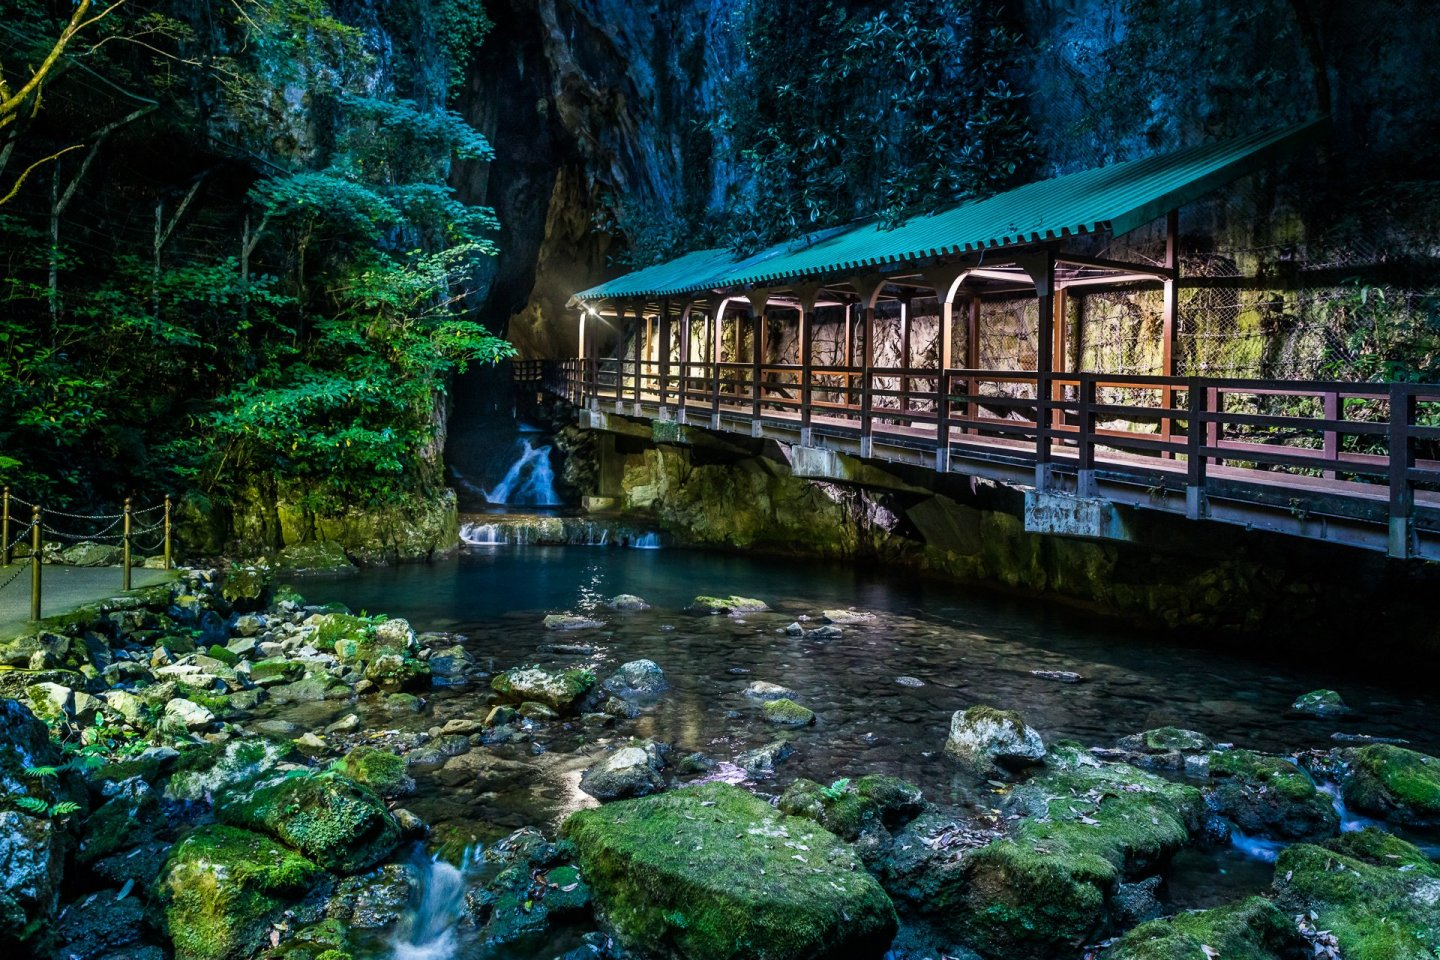 The magical portal bridge of Akiyoshi Cave spans the Ina River and leads you into an underground adventure